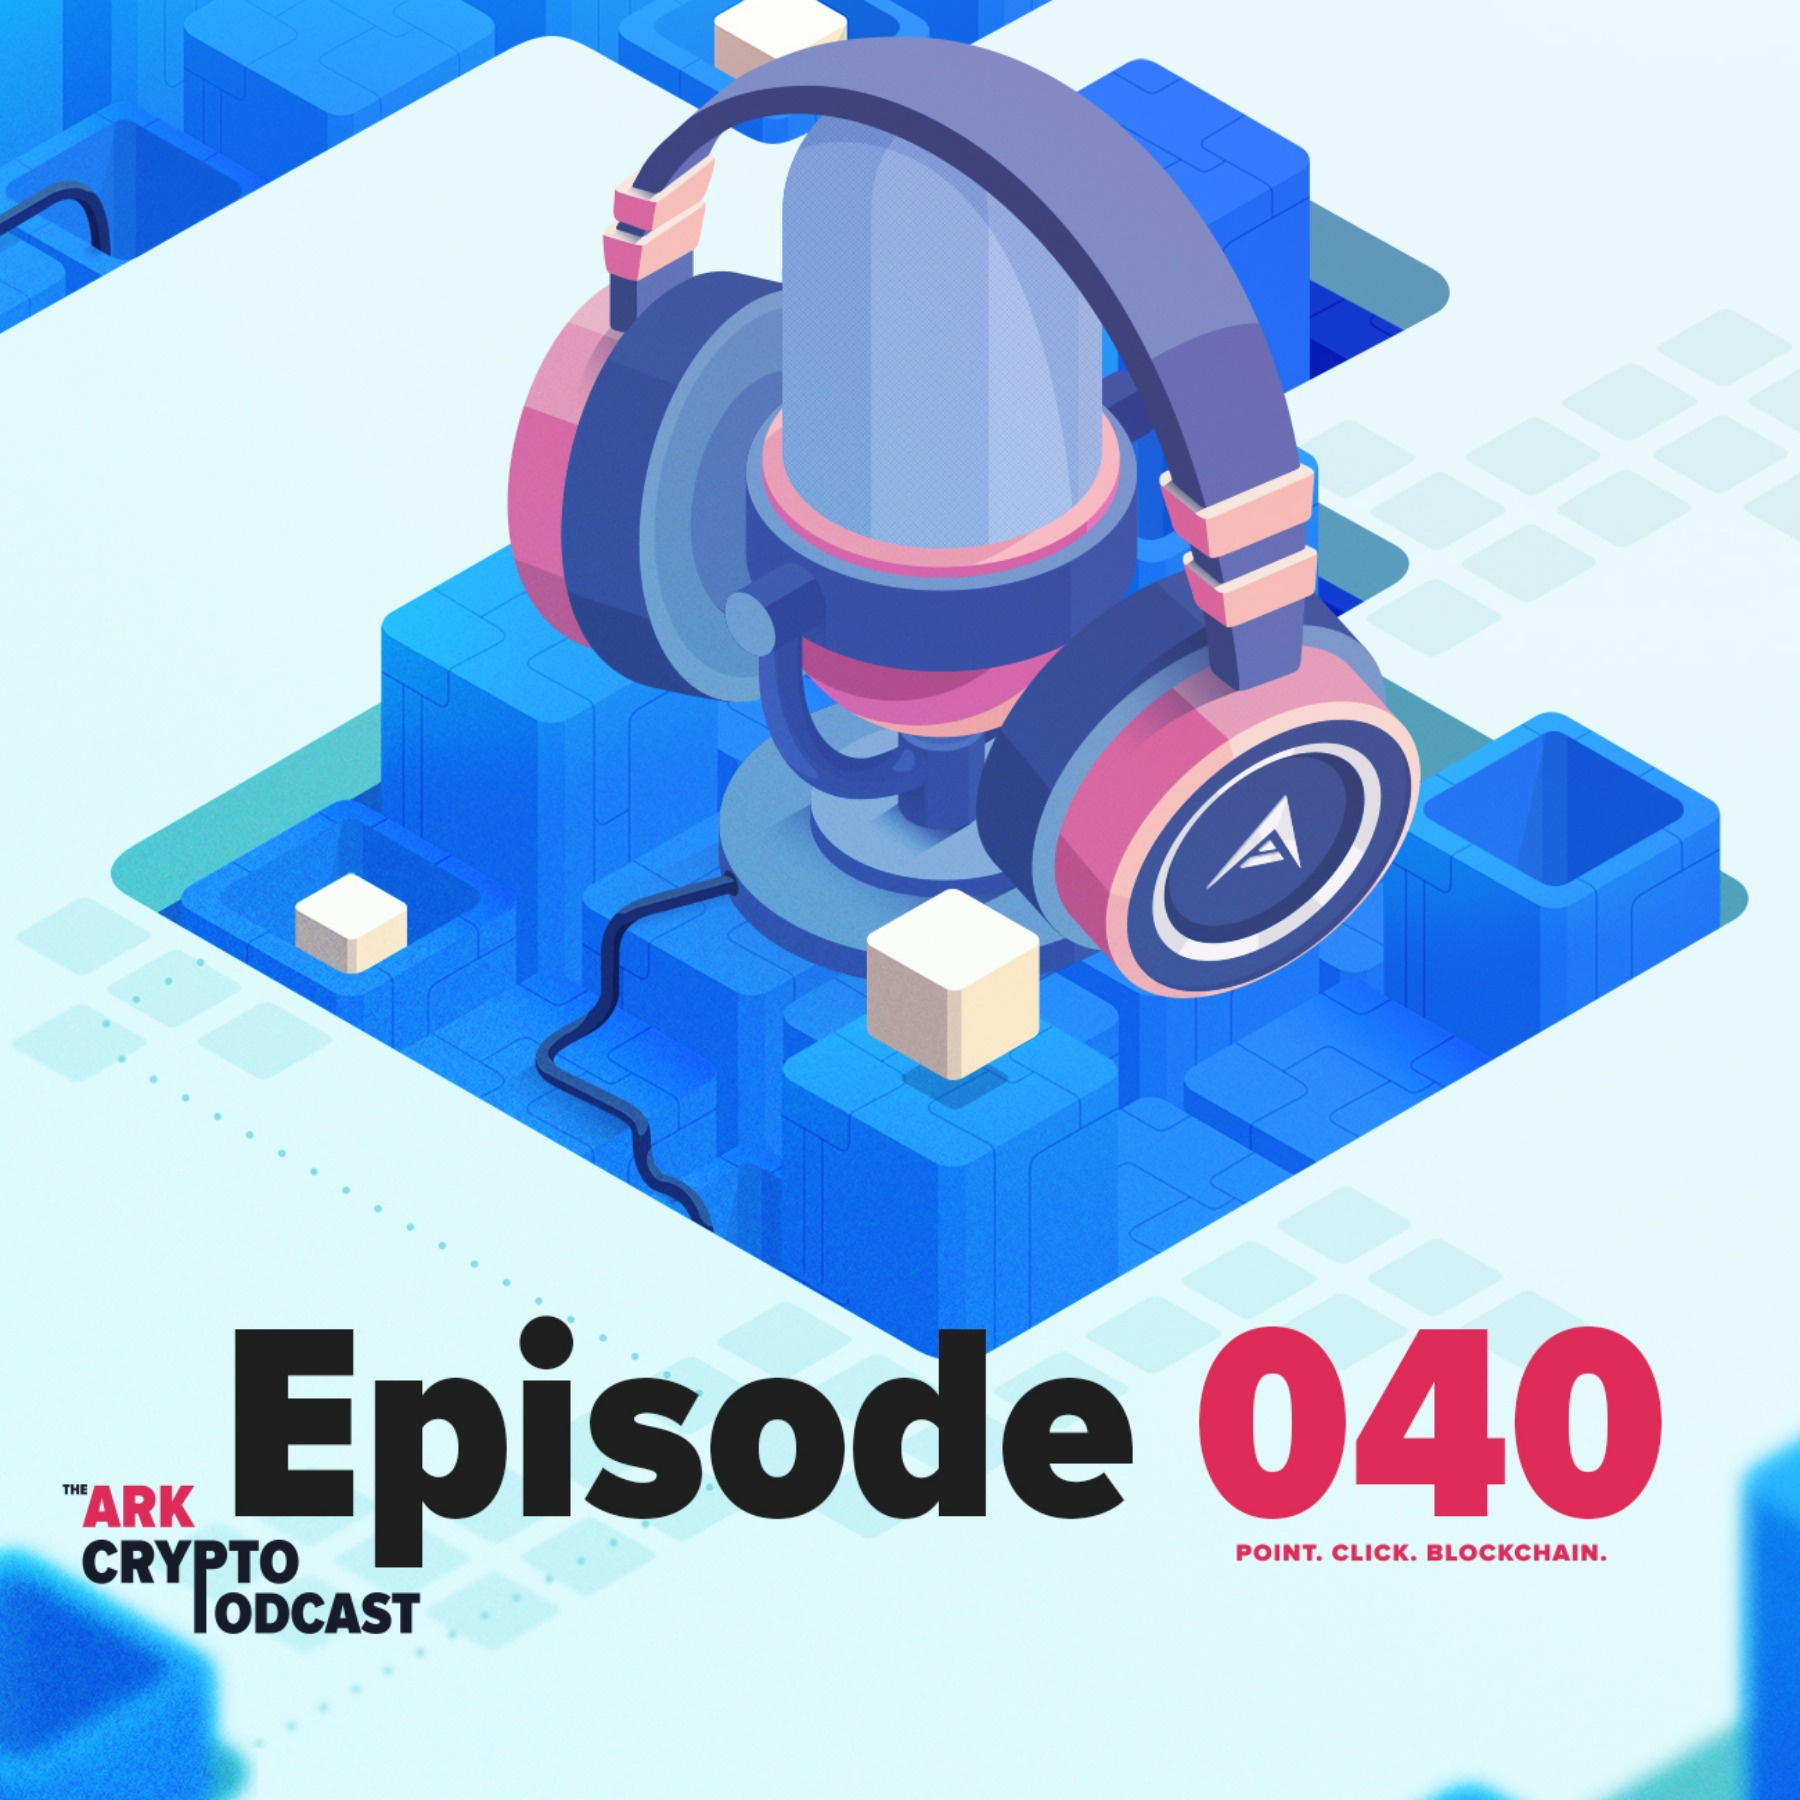 ARK Crypto Podcast #040 - 100% Community Questions All About the ARK Deployer